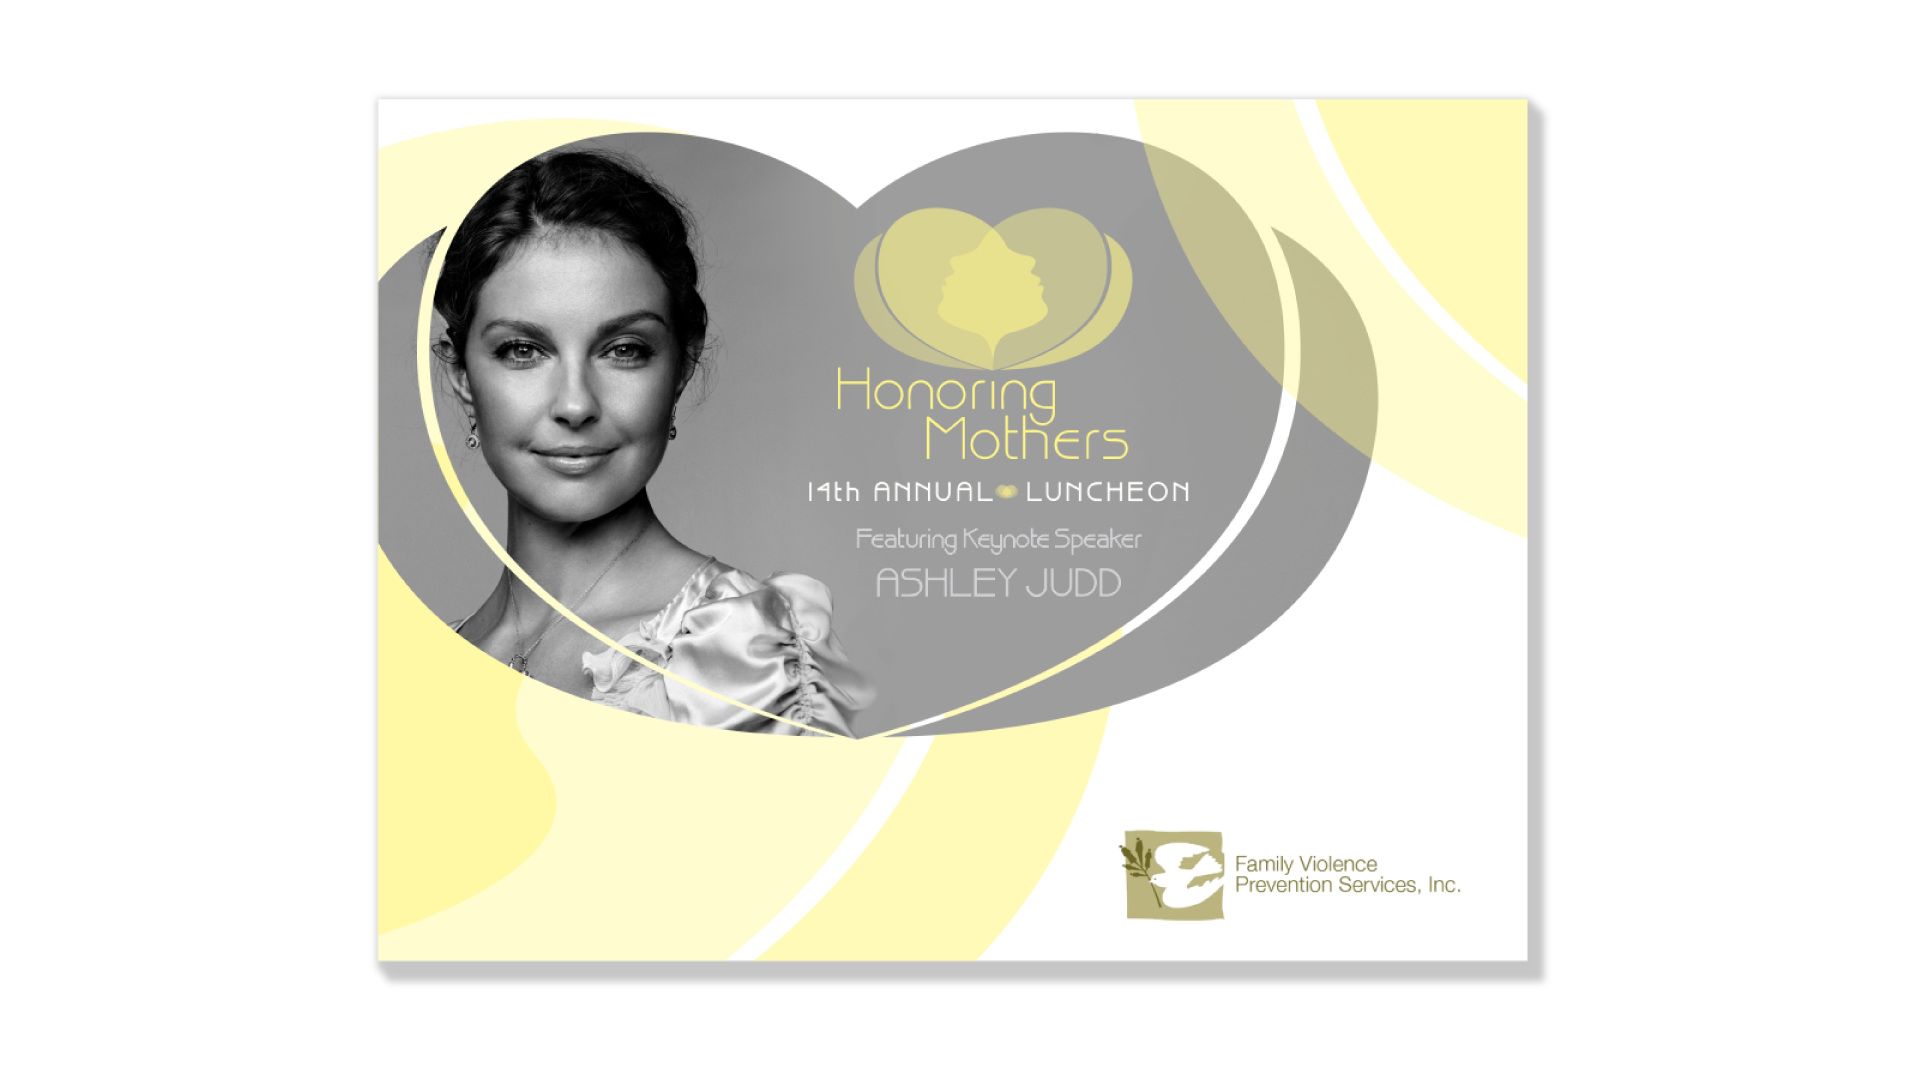 Family Violence Prevention Services 14th Annual Luncheon: Honoring Mothers